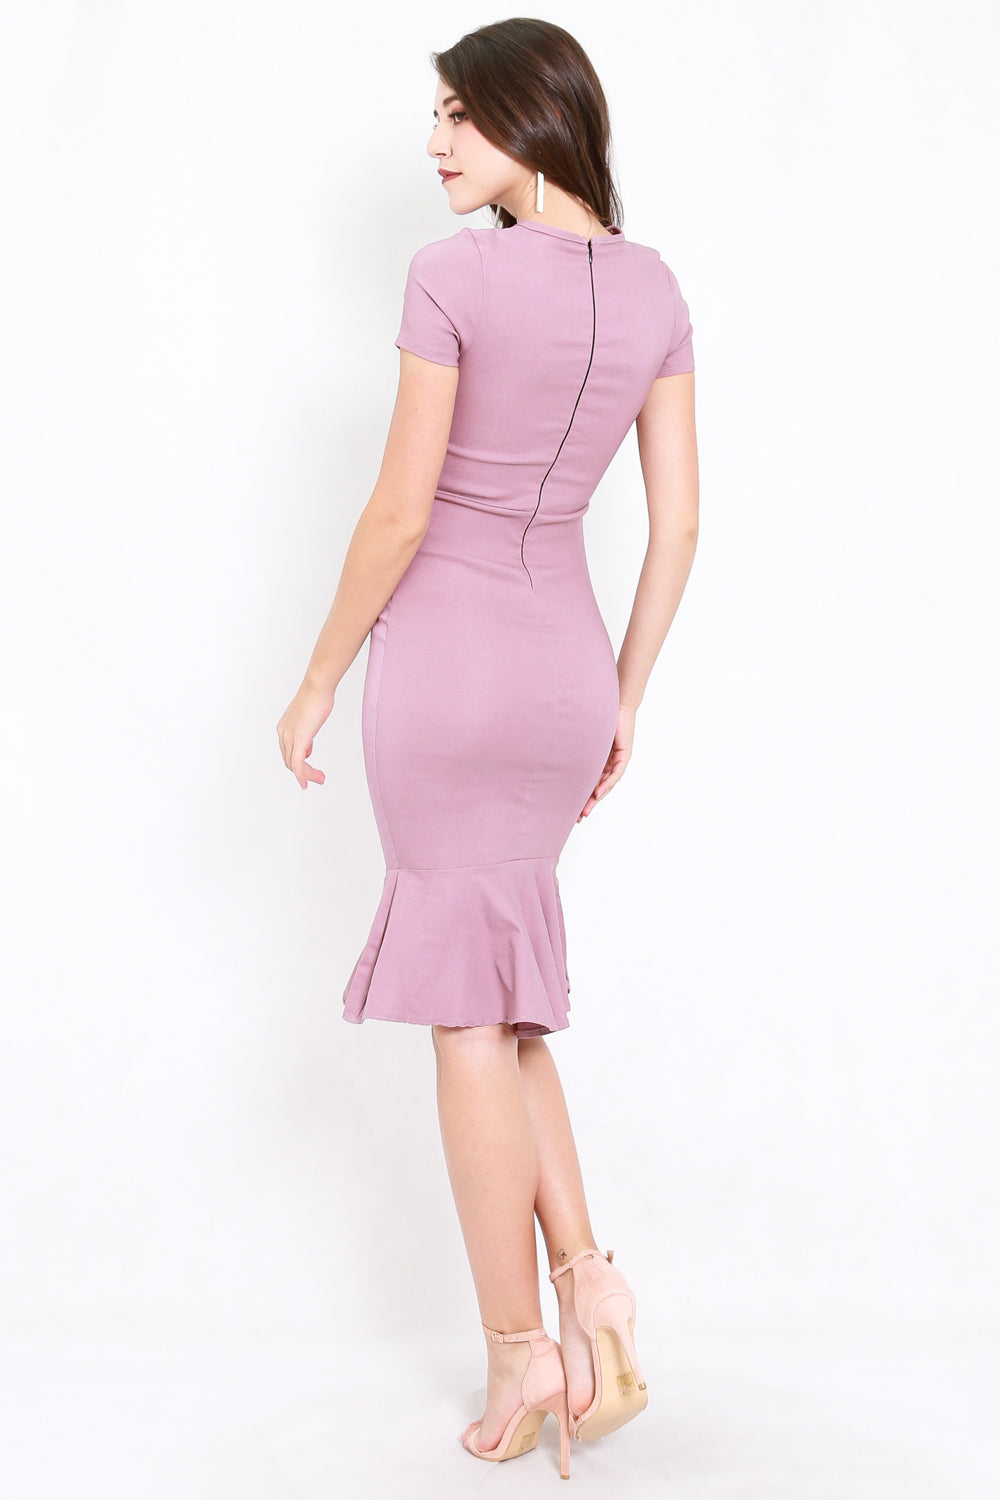 Mermaid Sleeved Midi Dress (Lavender)